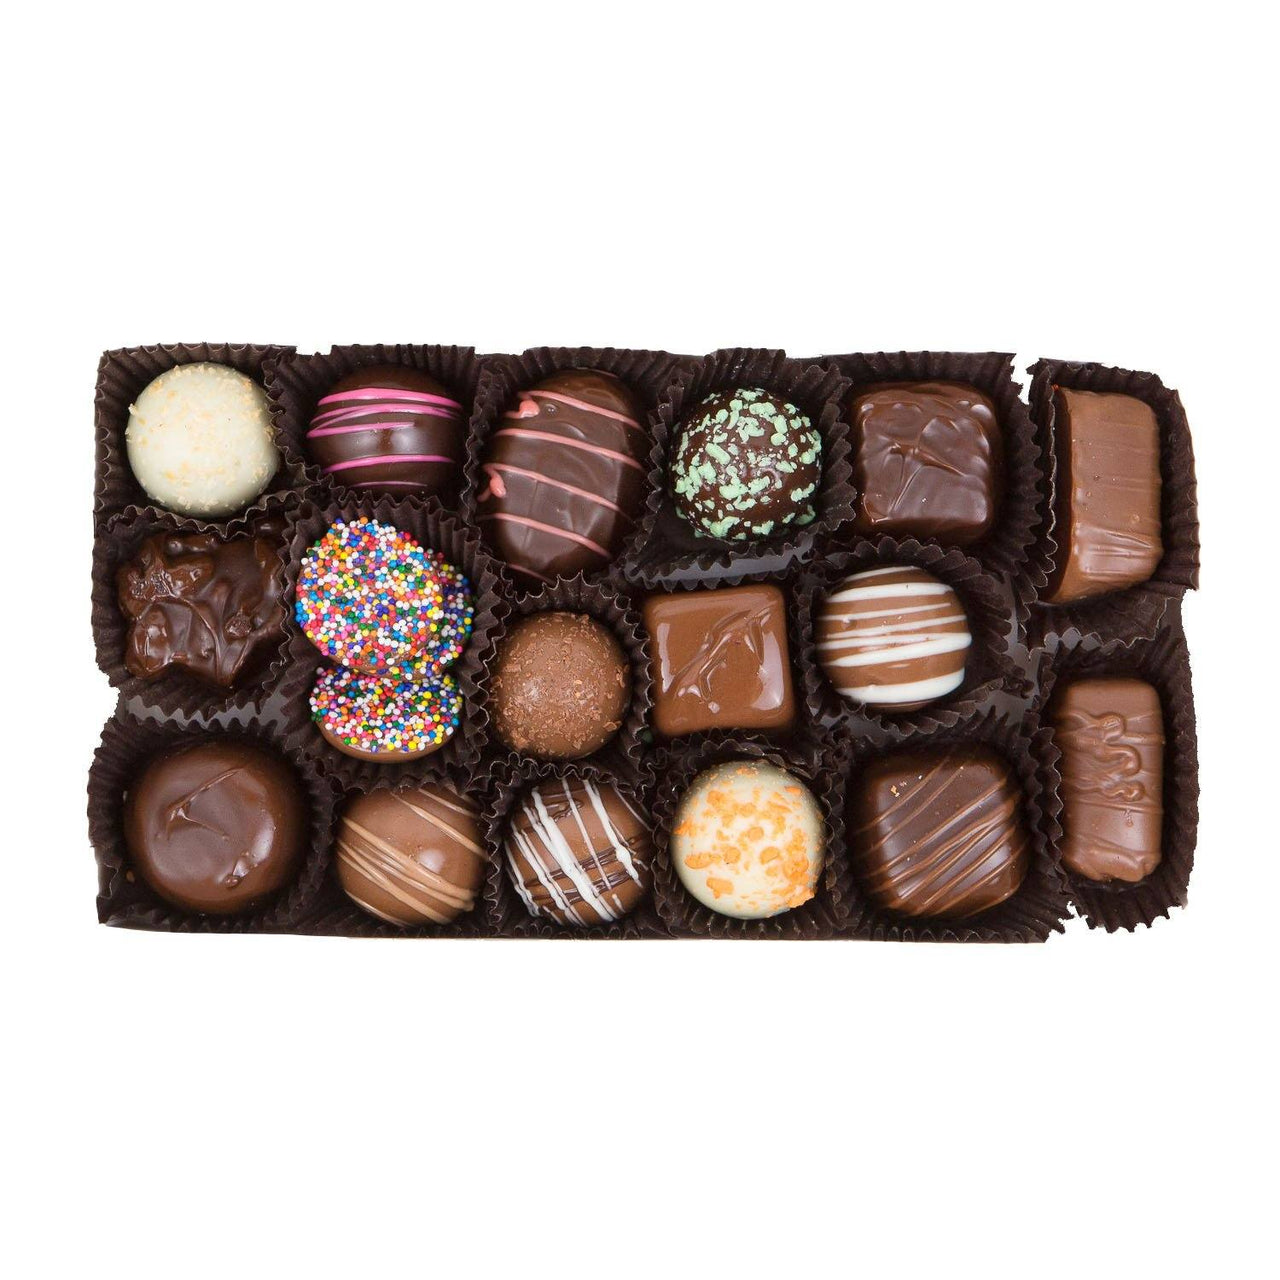 Food Gifts for Women - Assorted Chocolate Gift Box - Jackie's Chocolate (1487135146019)